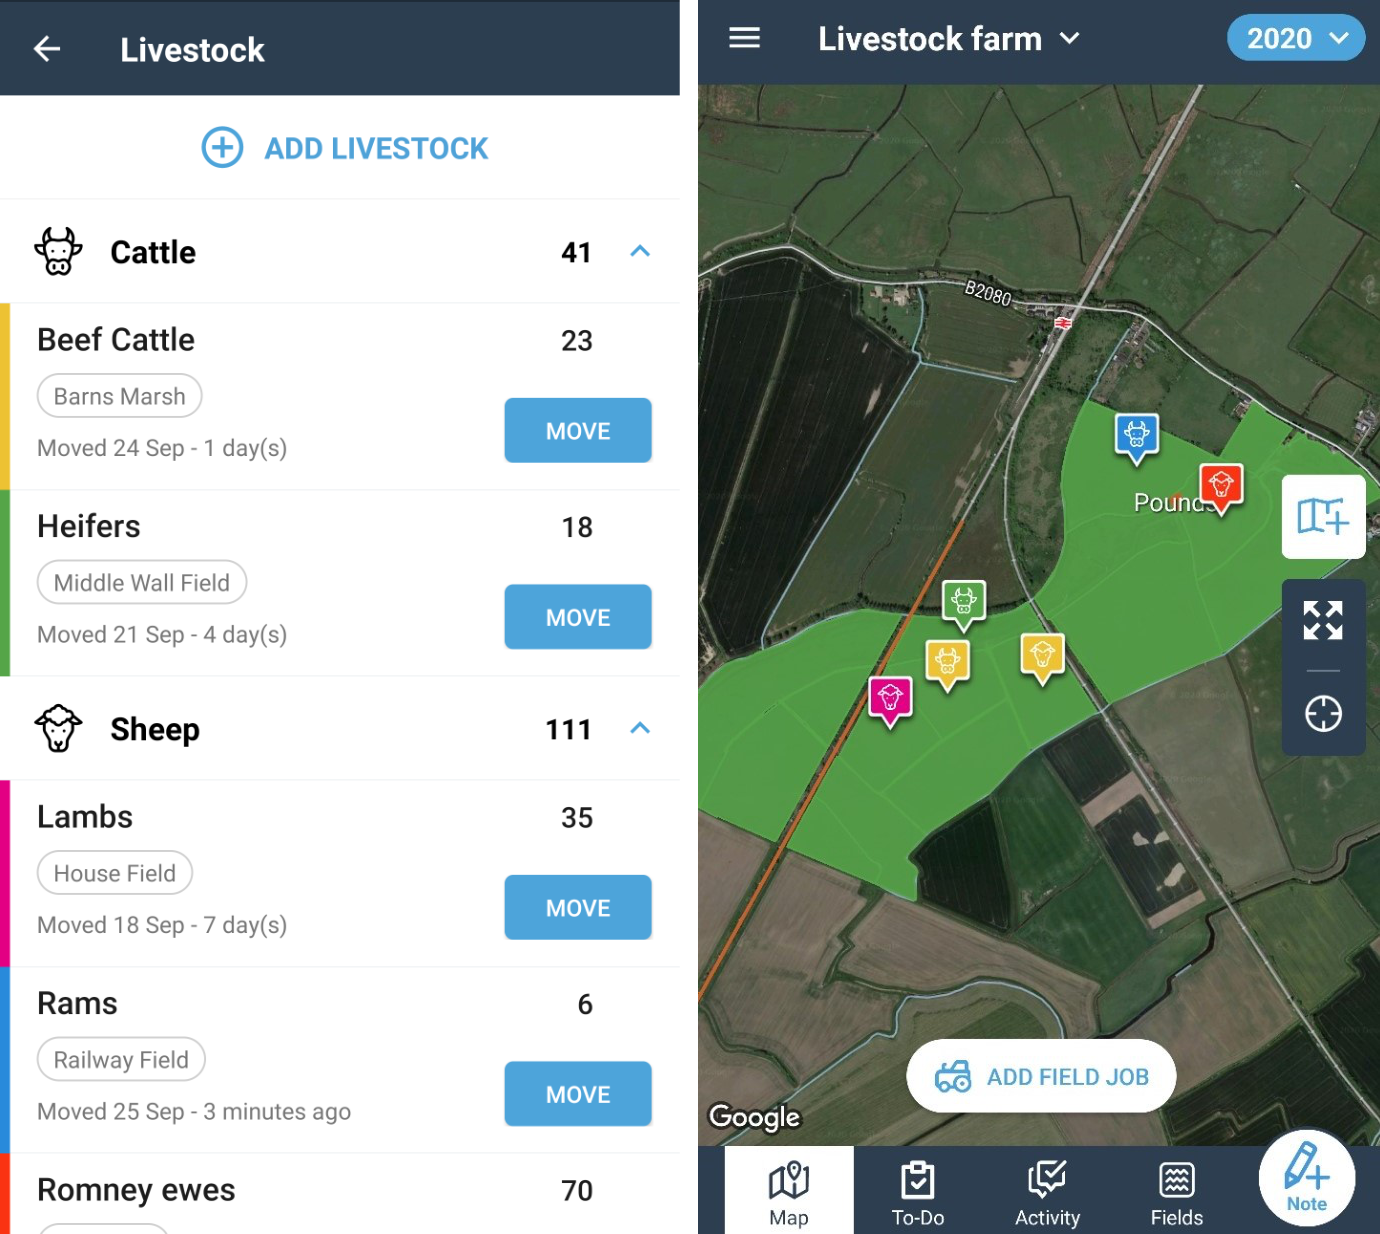 Summary of livestock on farm with total animals and their location on map for phone